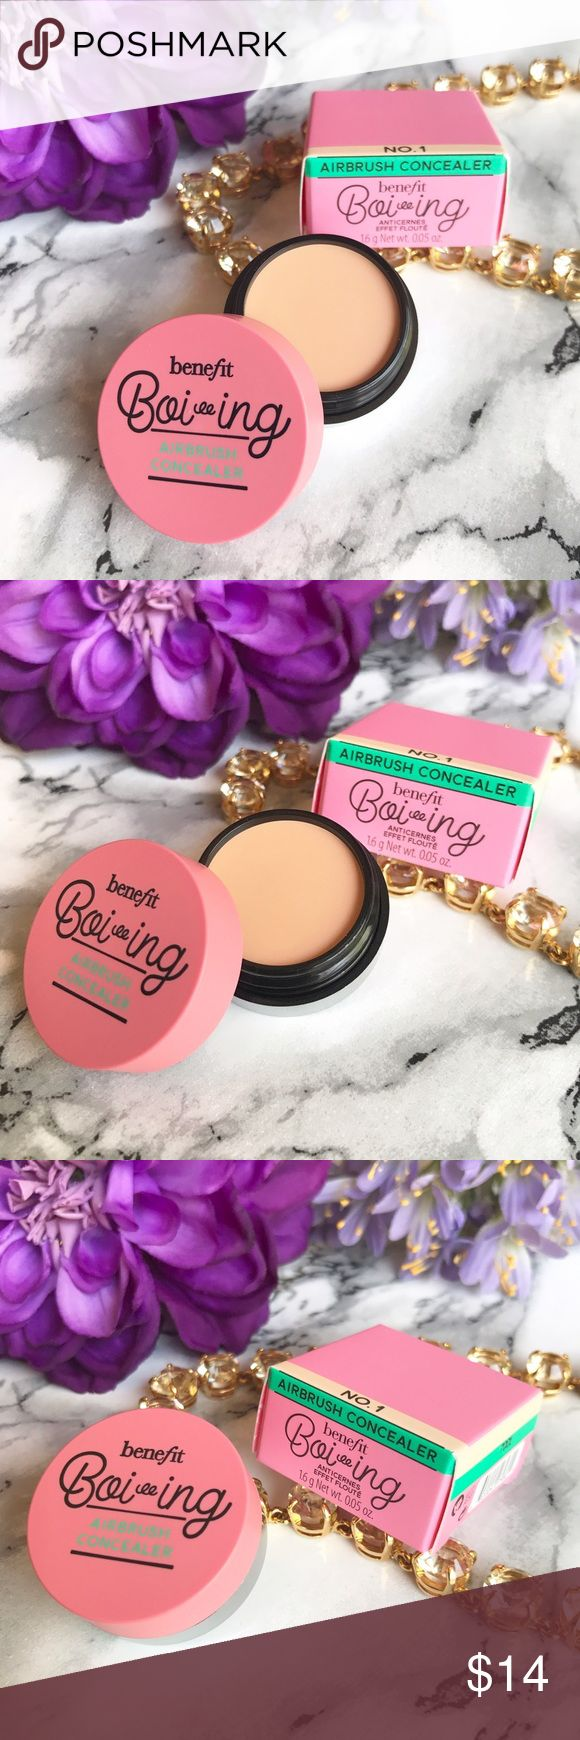 🆕 NIB 🎉 Benefit Boi-ing Airbrush Concealer NO 1 🆕 NIB 🌷 NEW ARRIVAL 🎉 Benefit Boi-ing Airbrush Concealer in Shade: No 1 ( Light ) 🍃 Travel Size 16g 🍃 This is the new Benefit Concealer that is getting numerous raves!!! Get it and try it NOW!!! ☀️ I also carry TOO Faced * Urban Decay * Bobbi Brown * Tarte * Marc Jacobs * BECCA and so much more.. SOLD OUT on Shade 2 Benefit Makeup Concealer